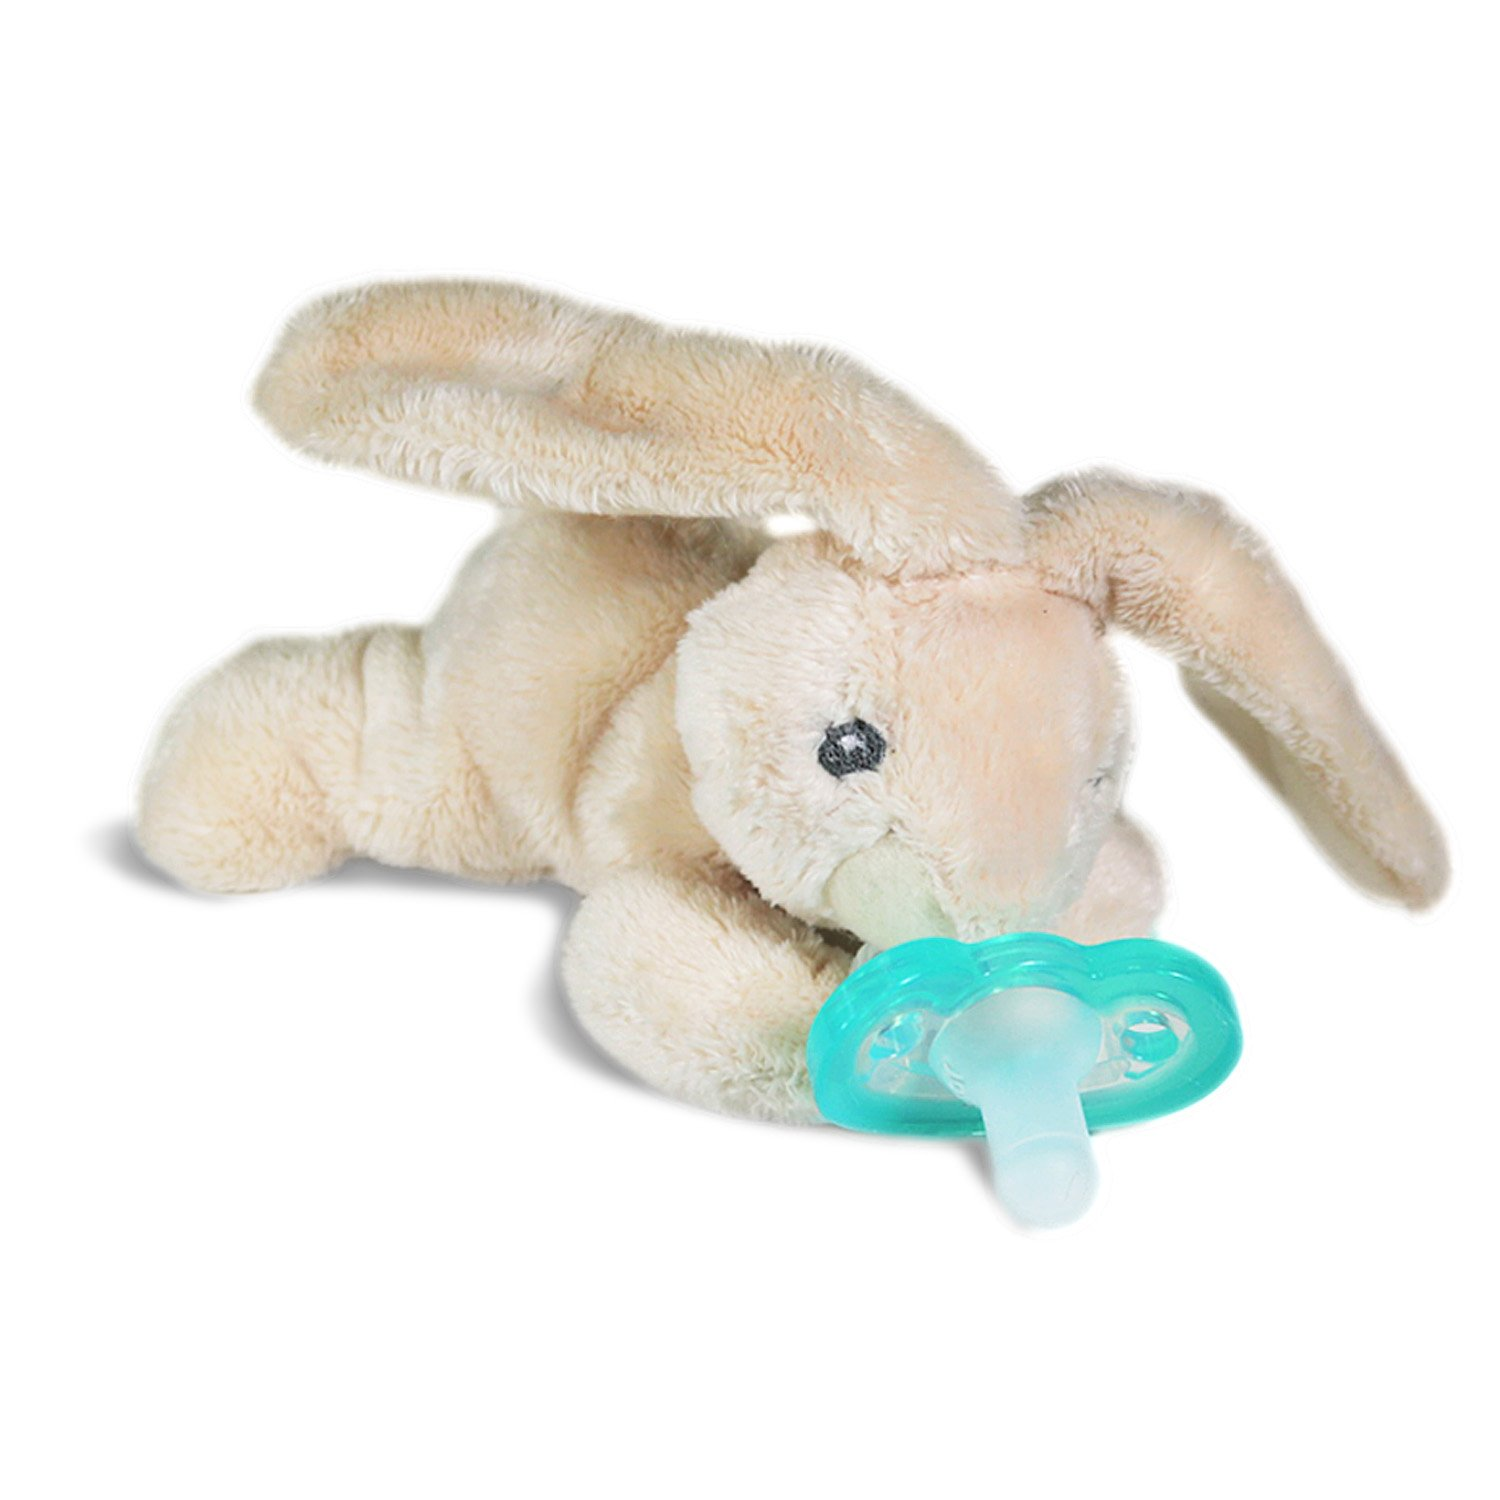 Raz Baby RaZ-Buddy JollyPop Pacifier Holder/Removable /Bunny Razbaby 901-CBJ